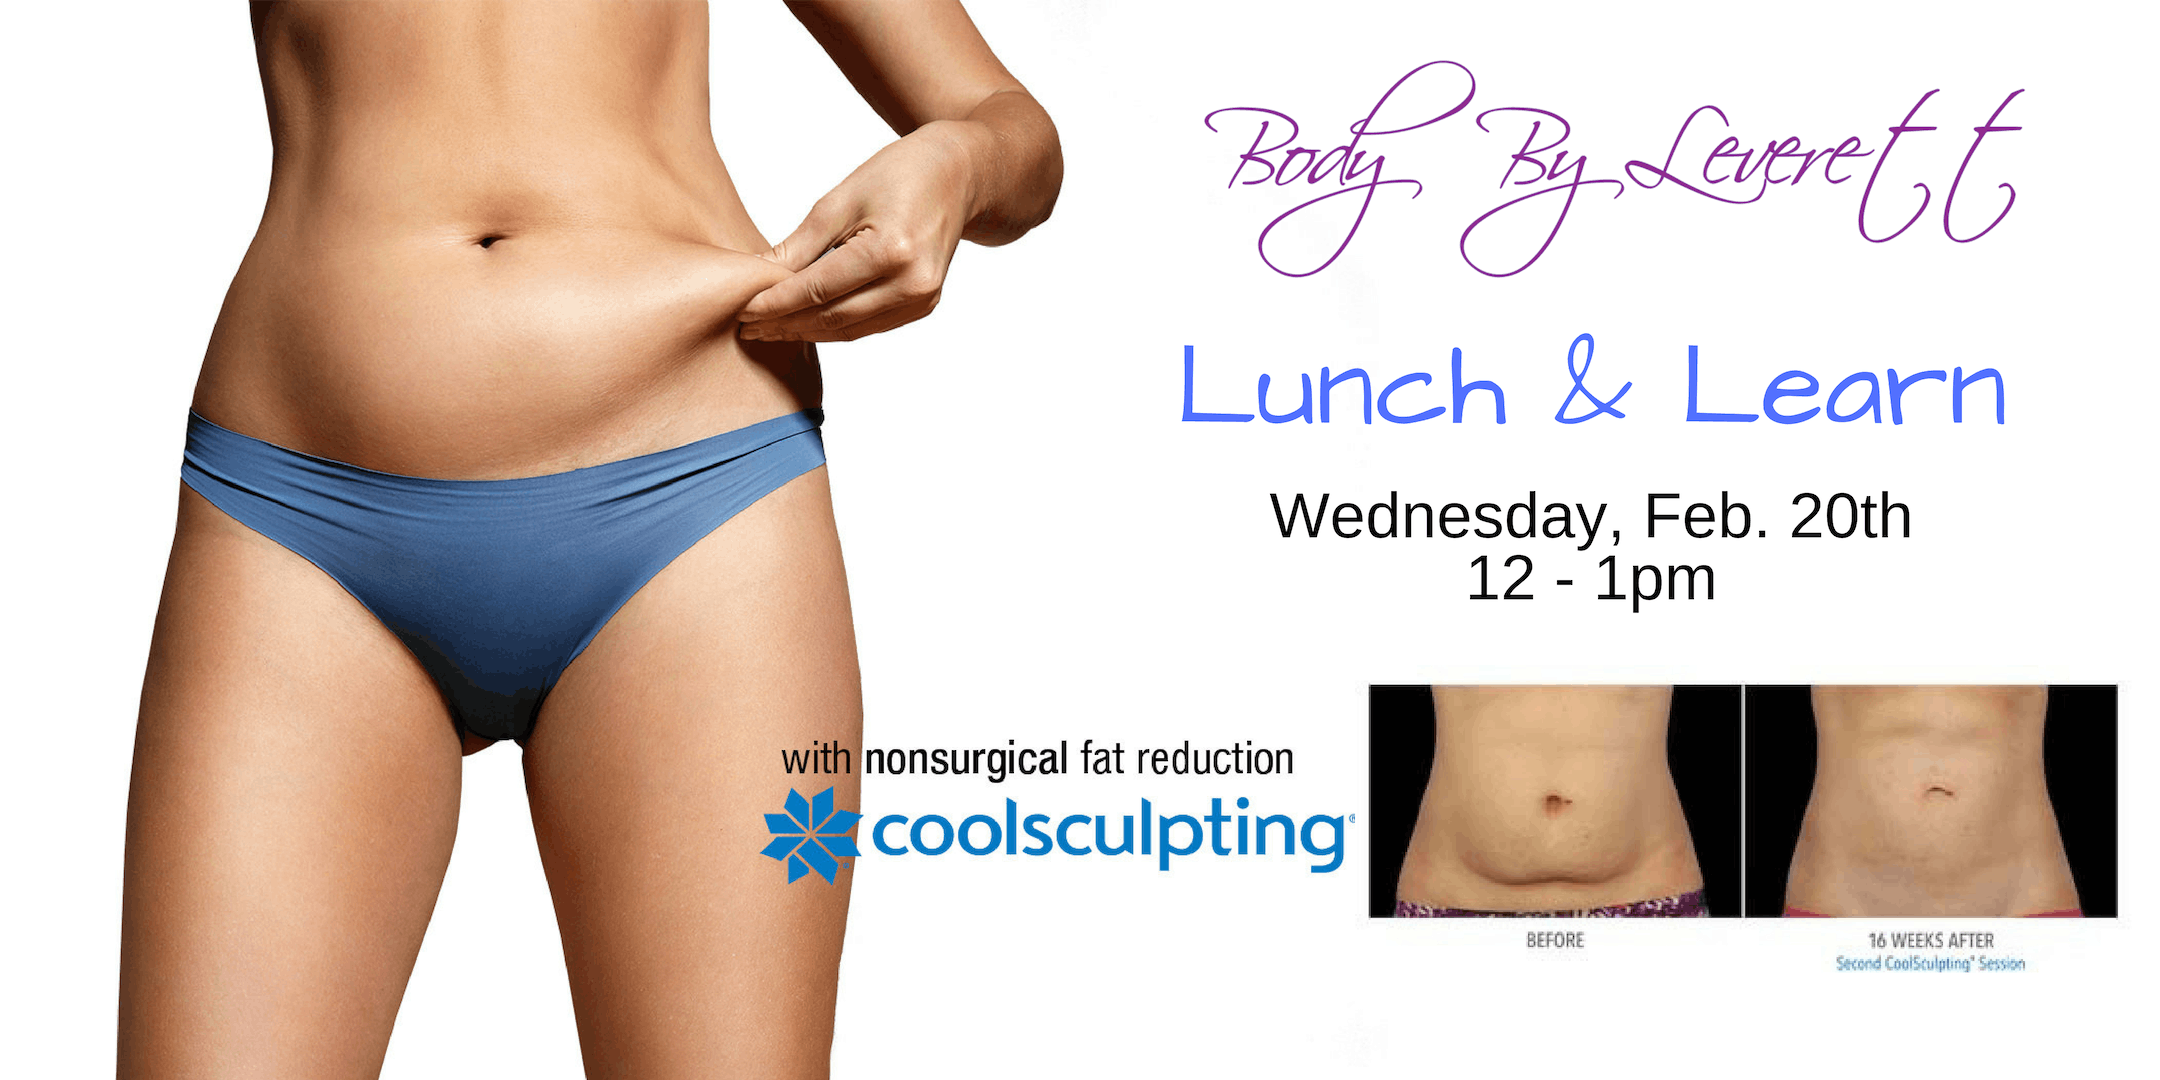 CoolSculpting Lunch & Learn - FREE!